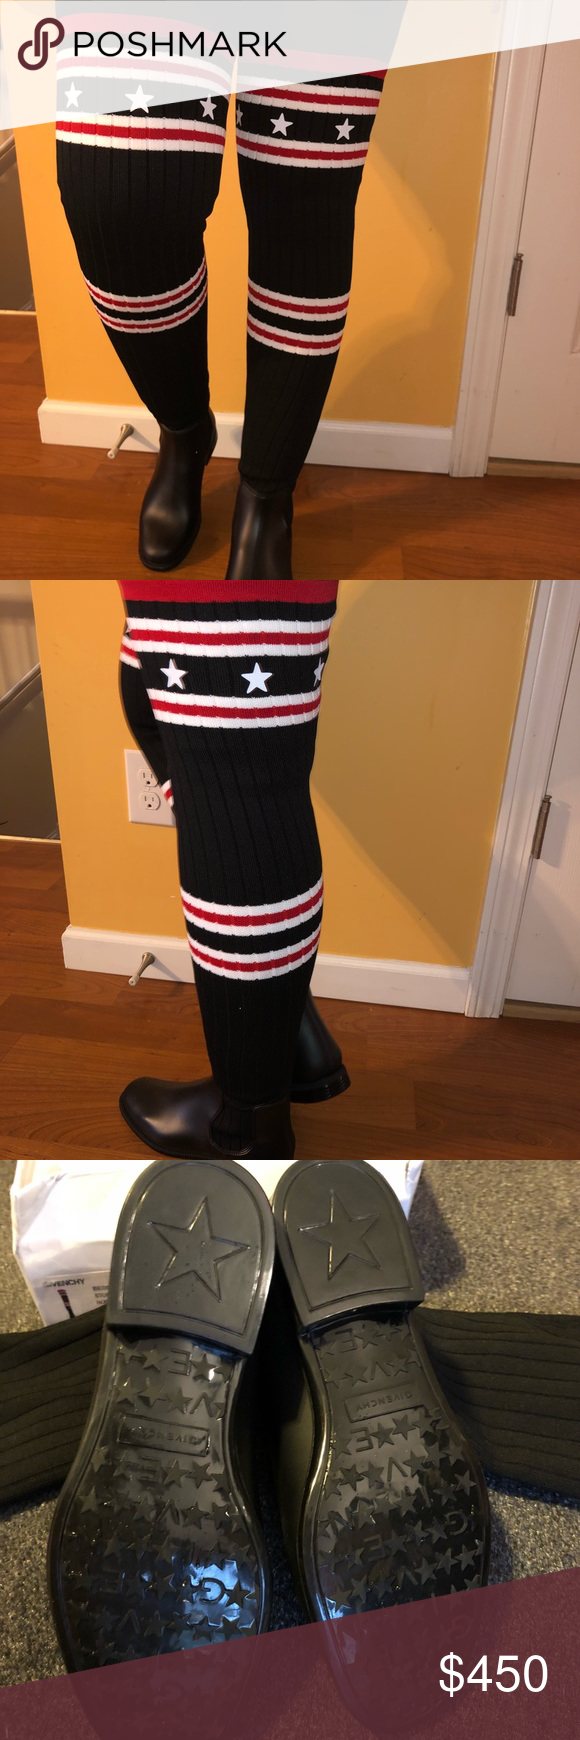 """8fcae6ffb Givenchy over-the-knee sock boot """"Storm"""" Over the knee boot with rubber  base Flat heel Round toe Pull on style Super comfy & super stylish."""